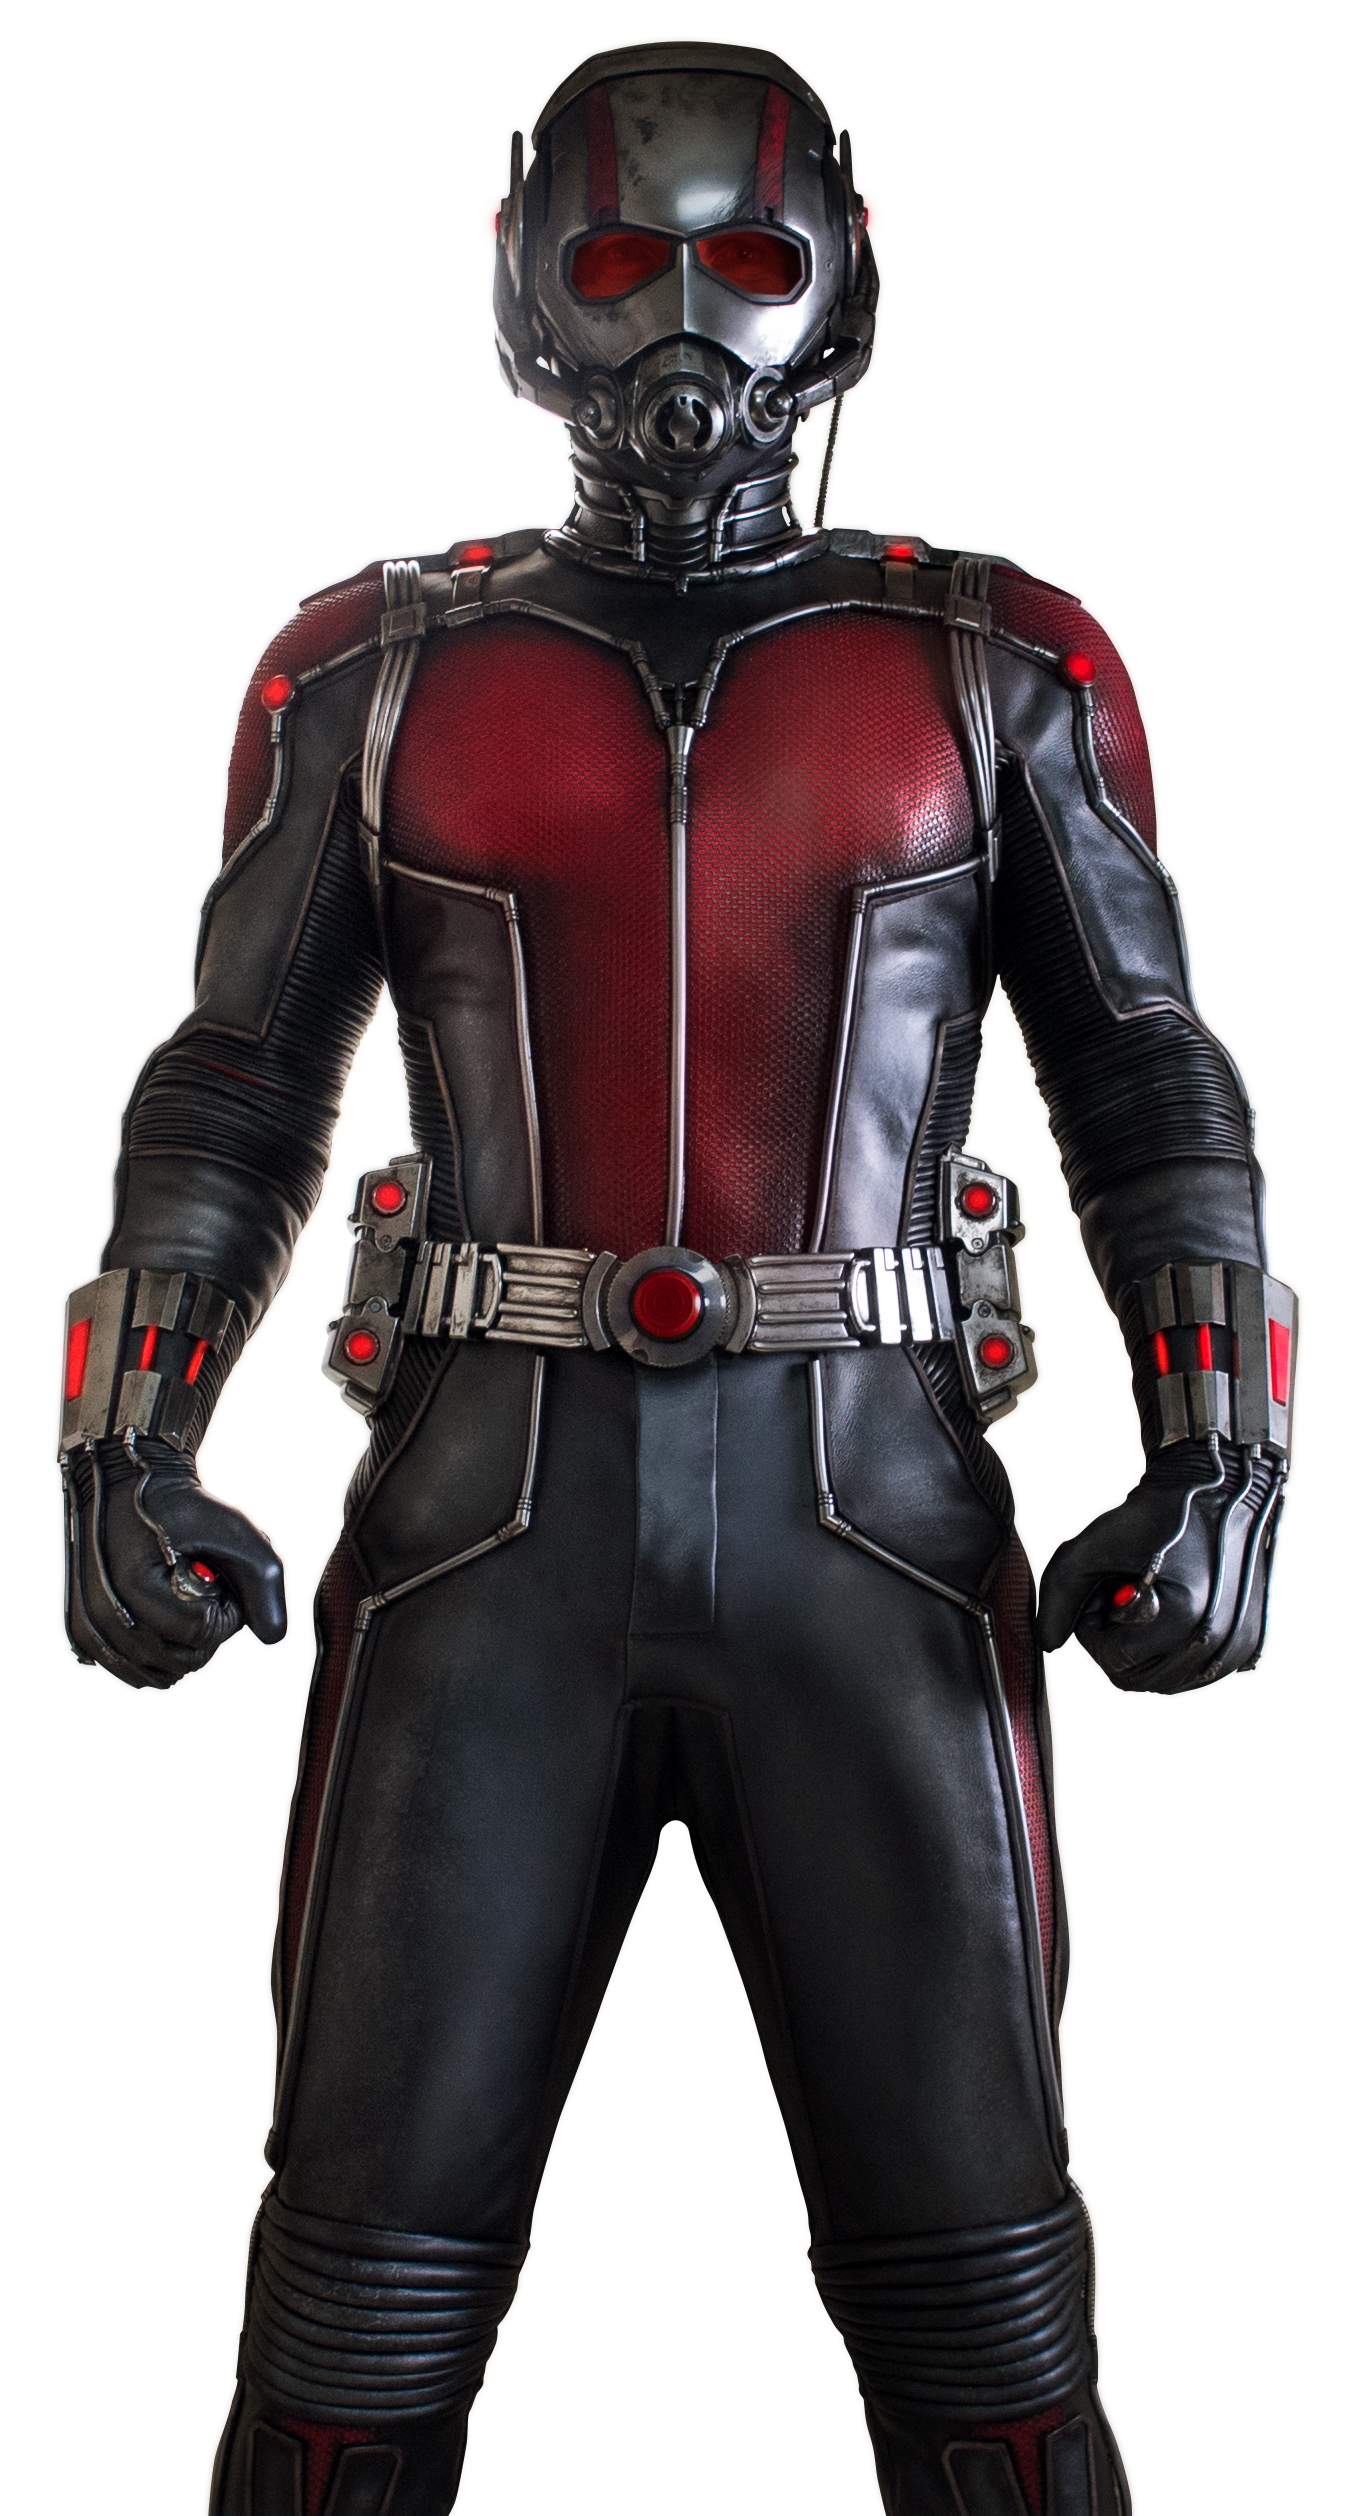 It's just a picture of Genius Marvel Heroes Ant Man